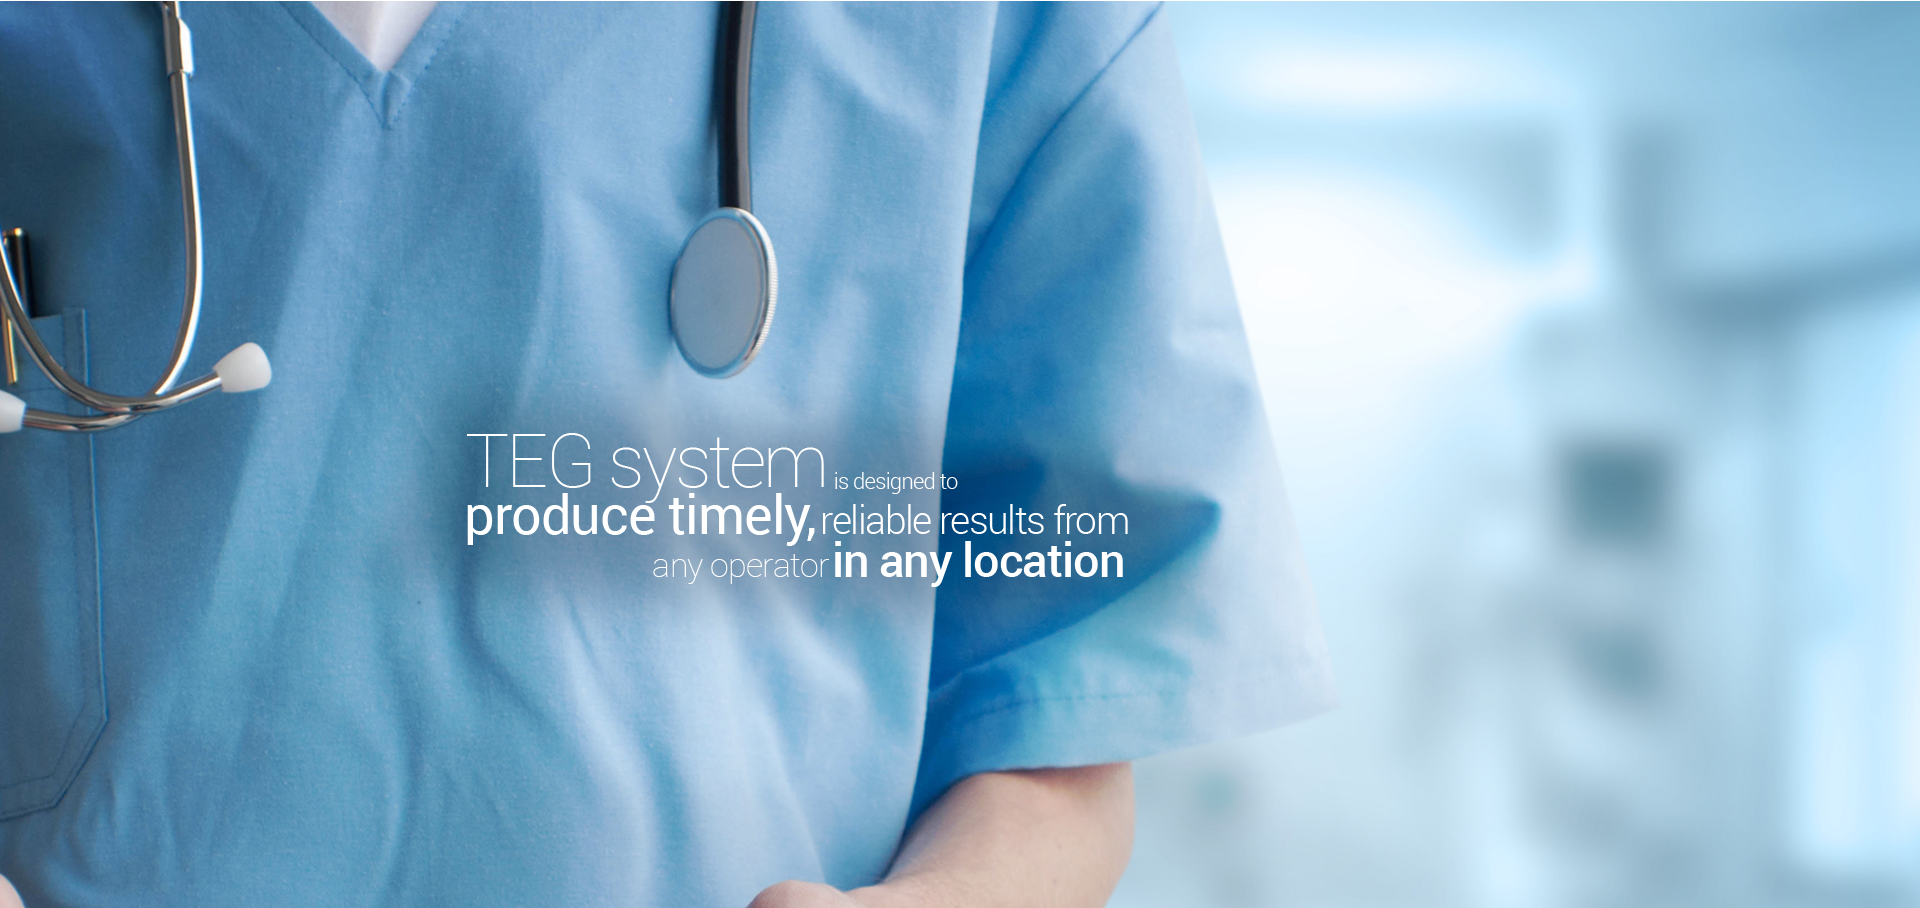 TEG system is designed to produce timely, reliable results from any operator in any location